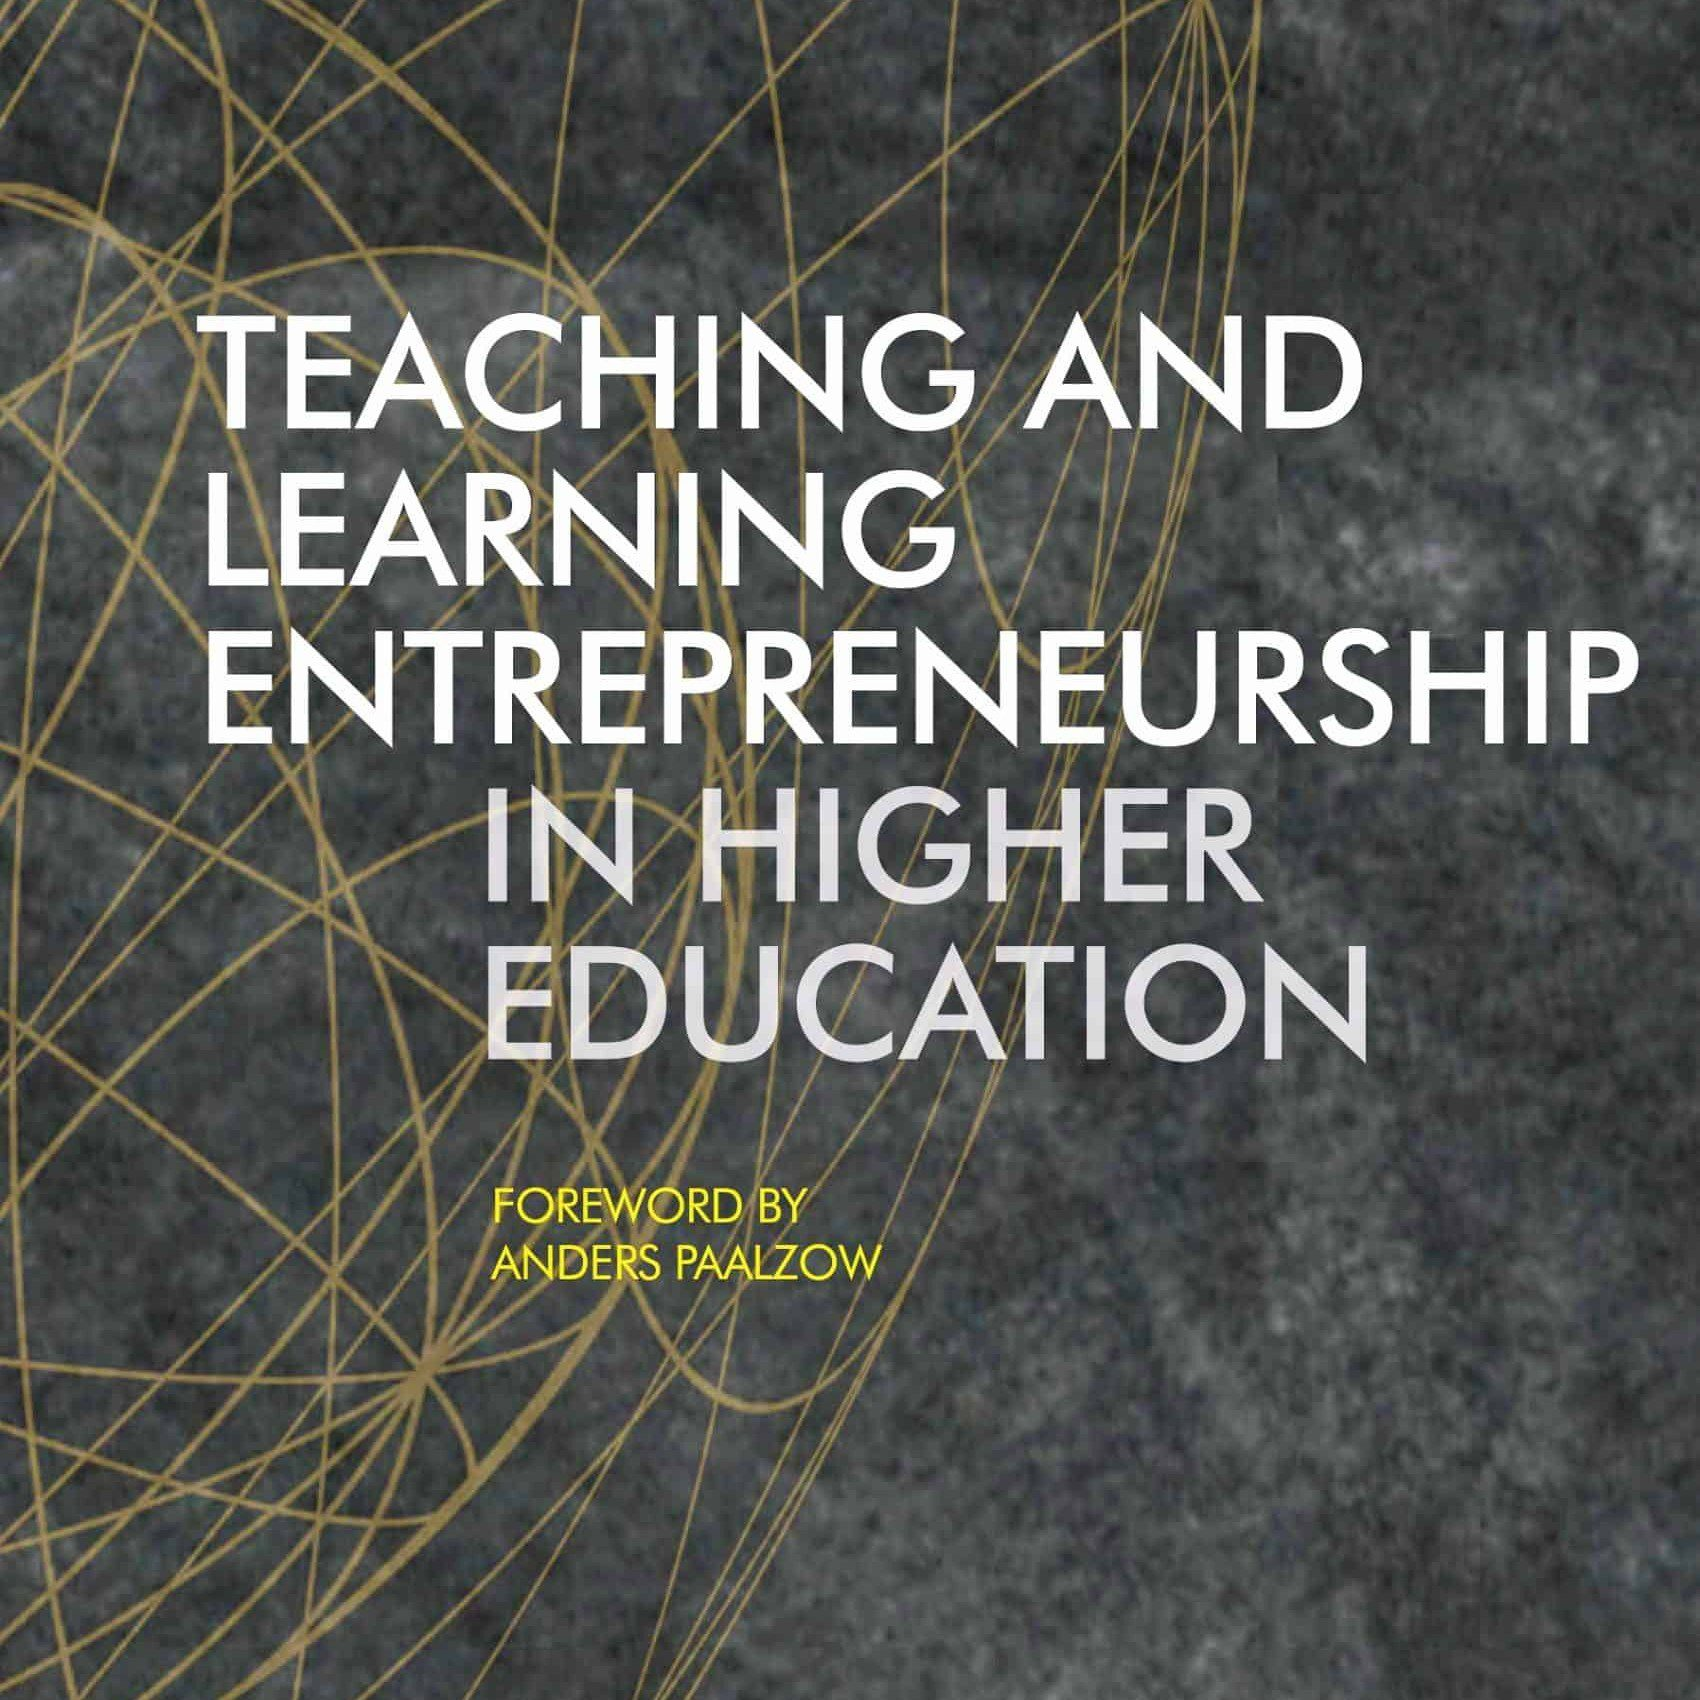 Teaching and Learning Entrepreneurship in Higher Education (2017) - John Branch - Anne Hørsted - Claus Nygaard - Anders Paalzow - SSERiga - Stockholm School of Economics Riga - Institute for Learning in Higher Education - Libri Publishing Ltd